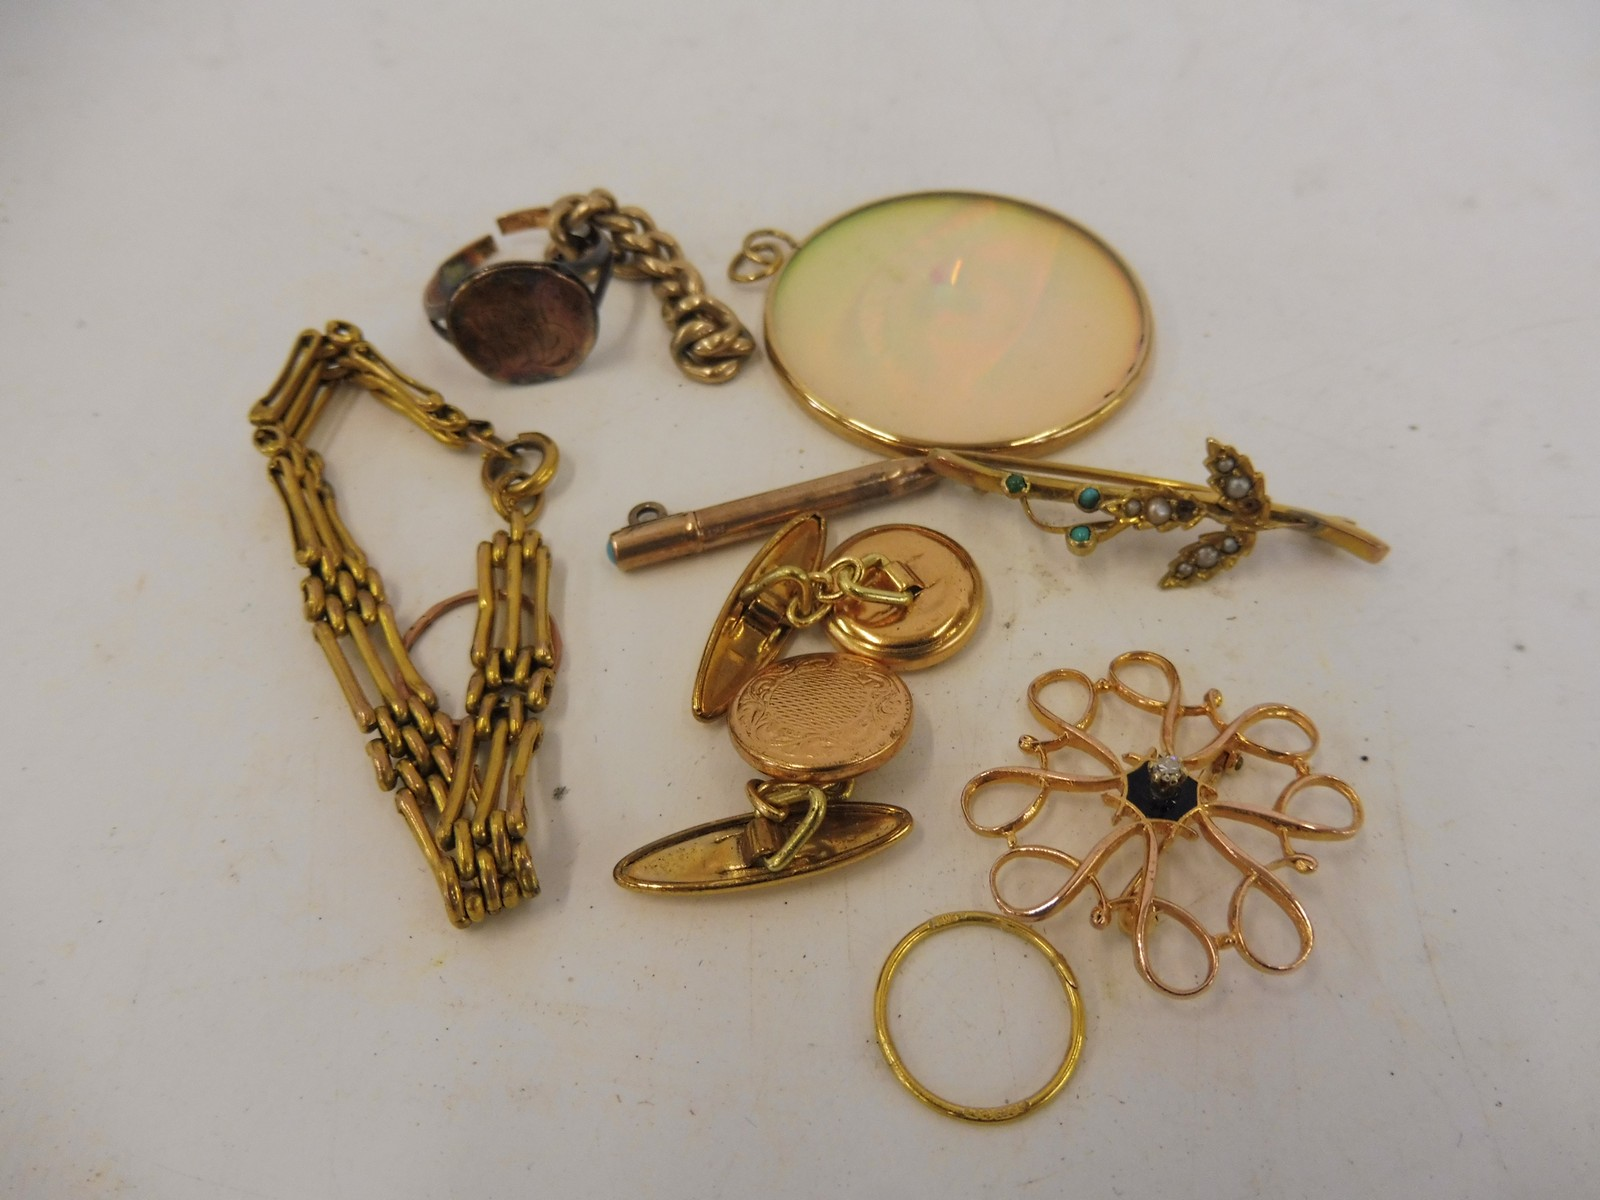 Lot 52 - A small box of mostly 9ct gold including a delicate brooch in the form of a flower.